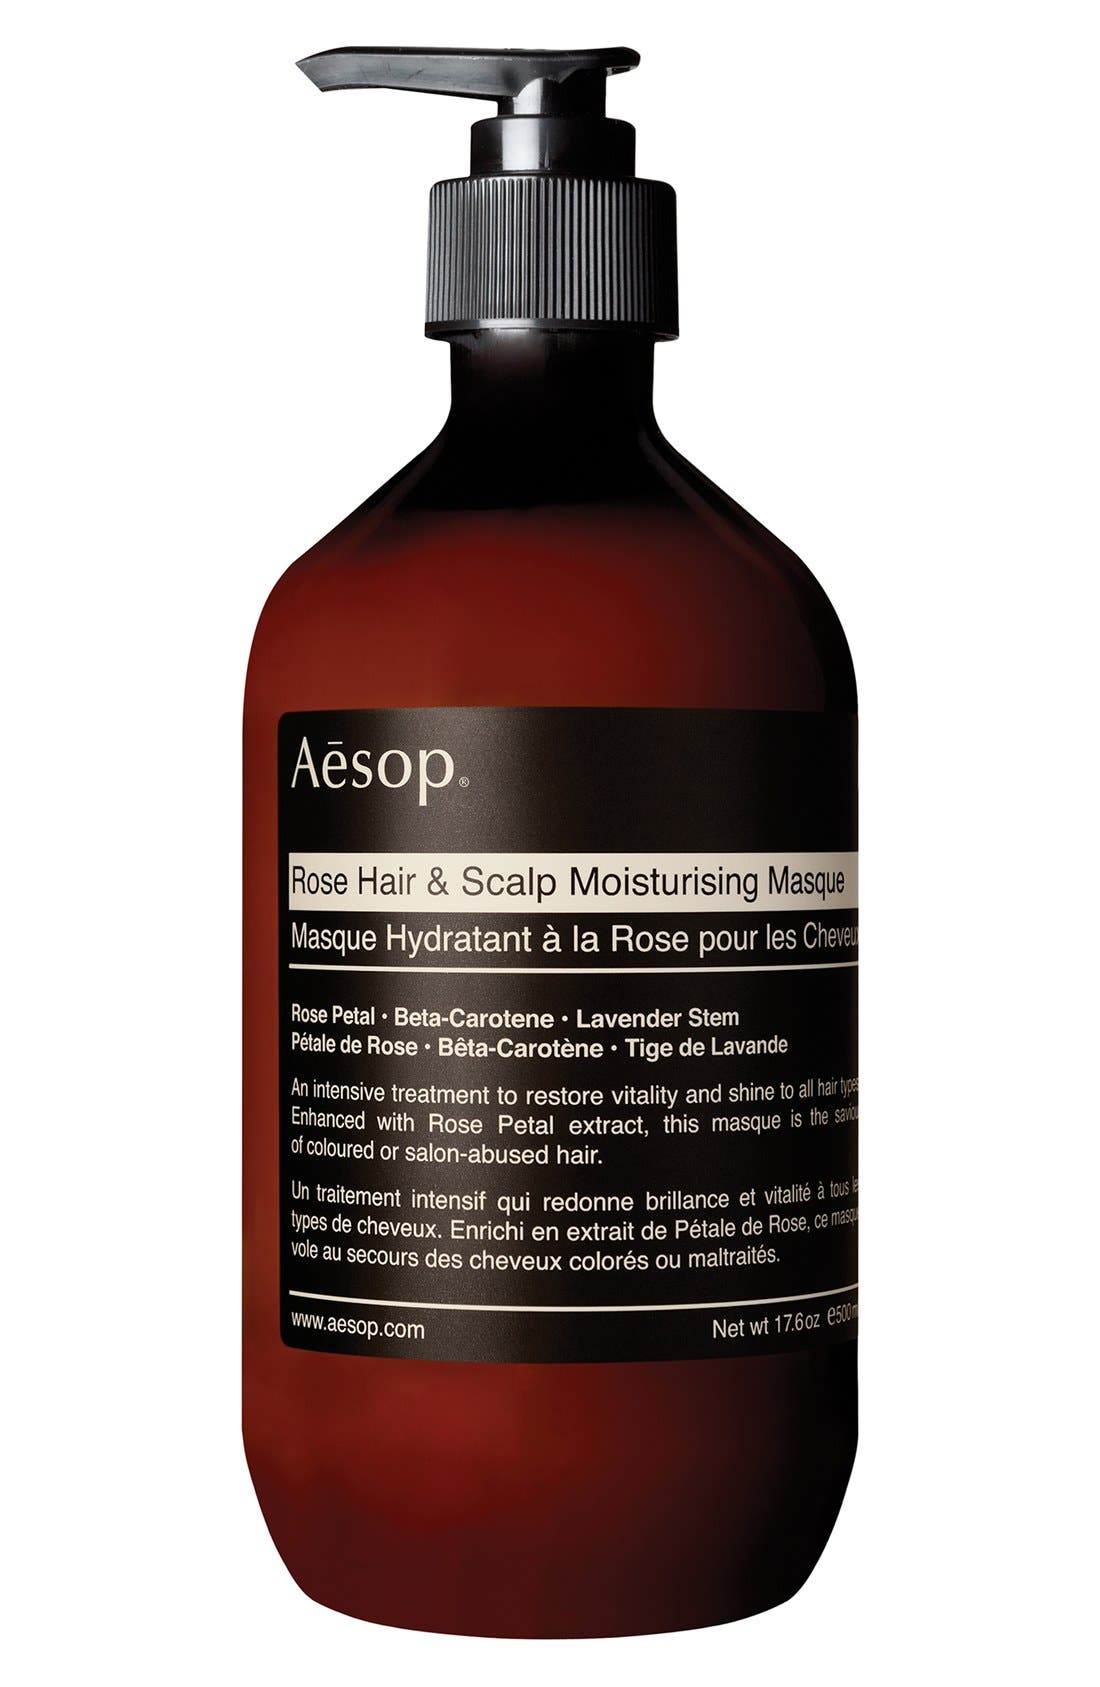 AESOP, Rose Hair & Scalp Moisturising Masque, Alternate thumbnail 2, color, NONE